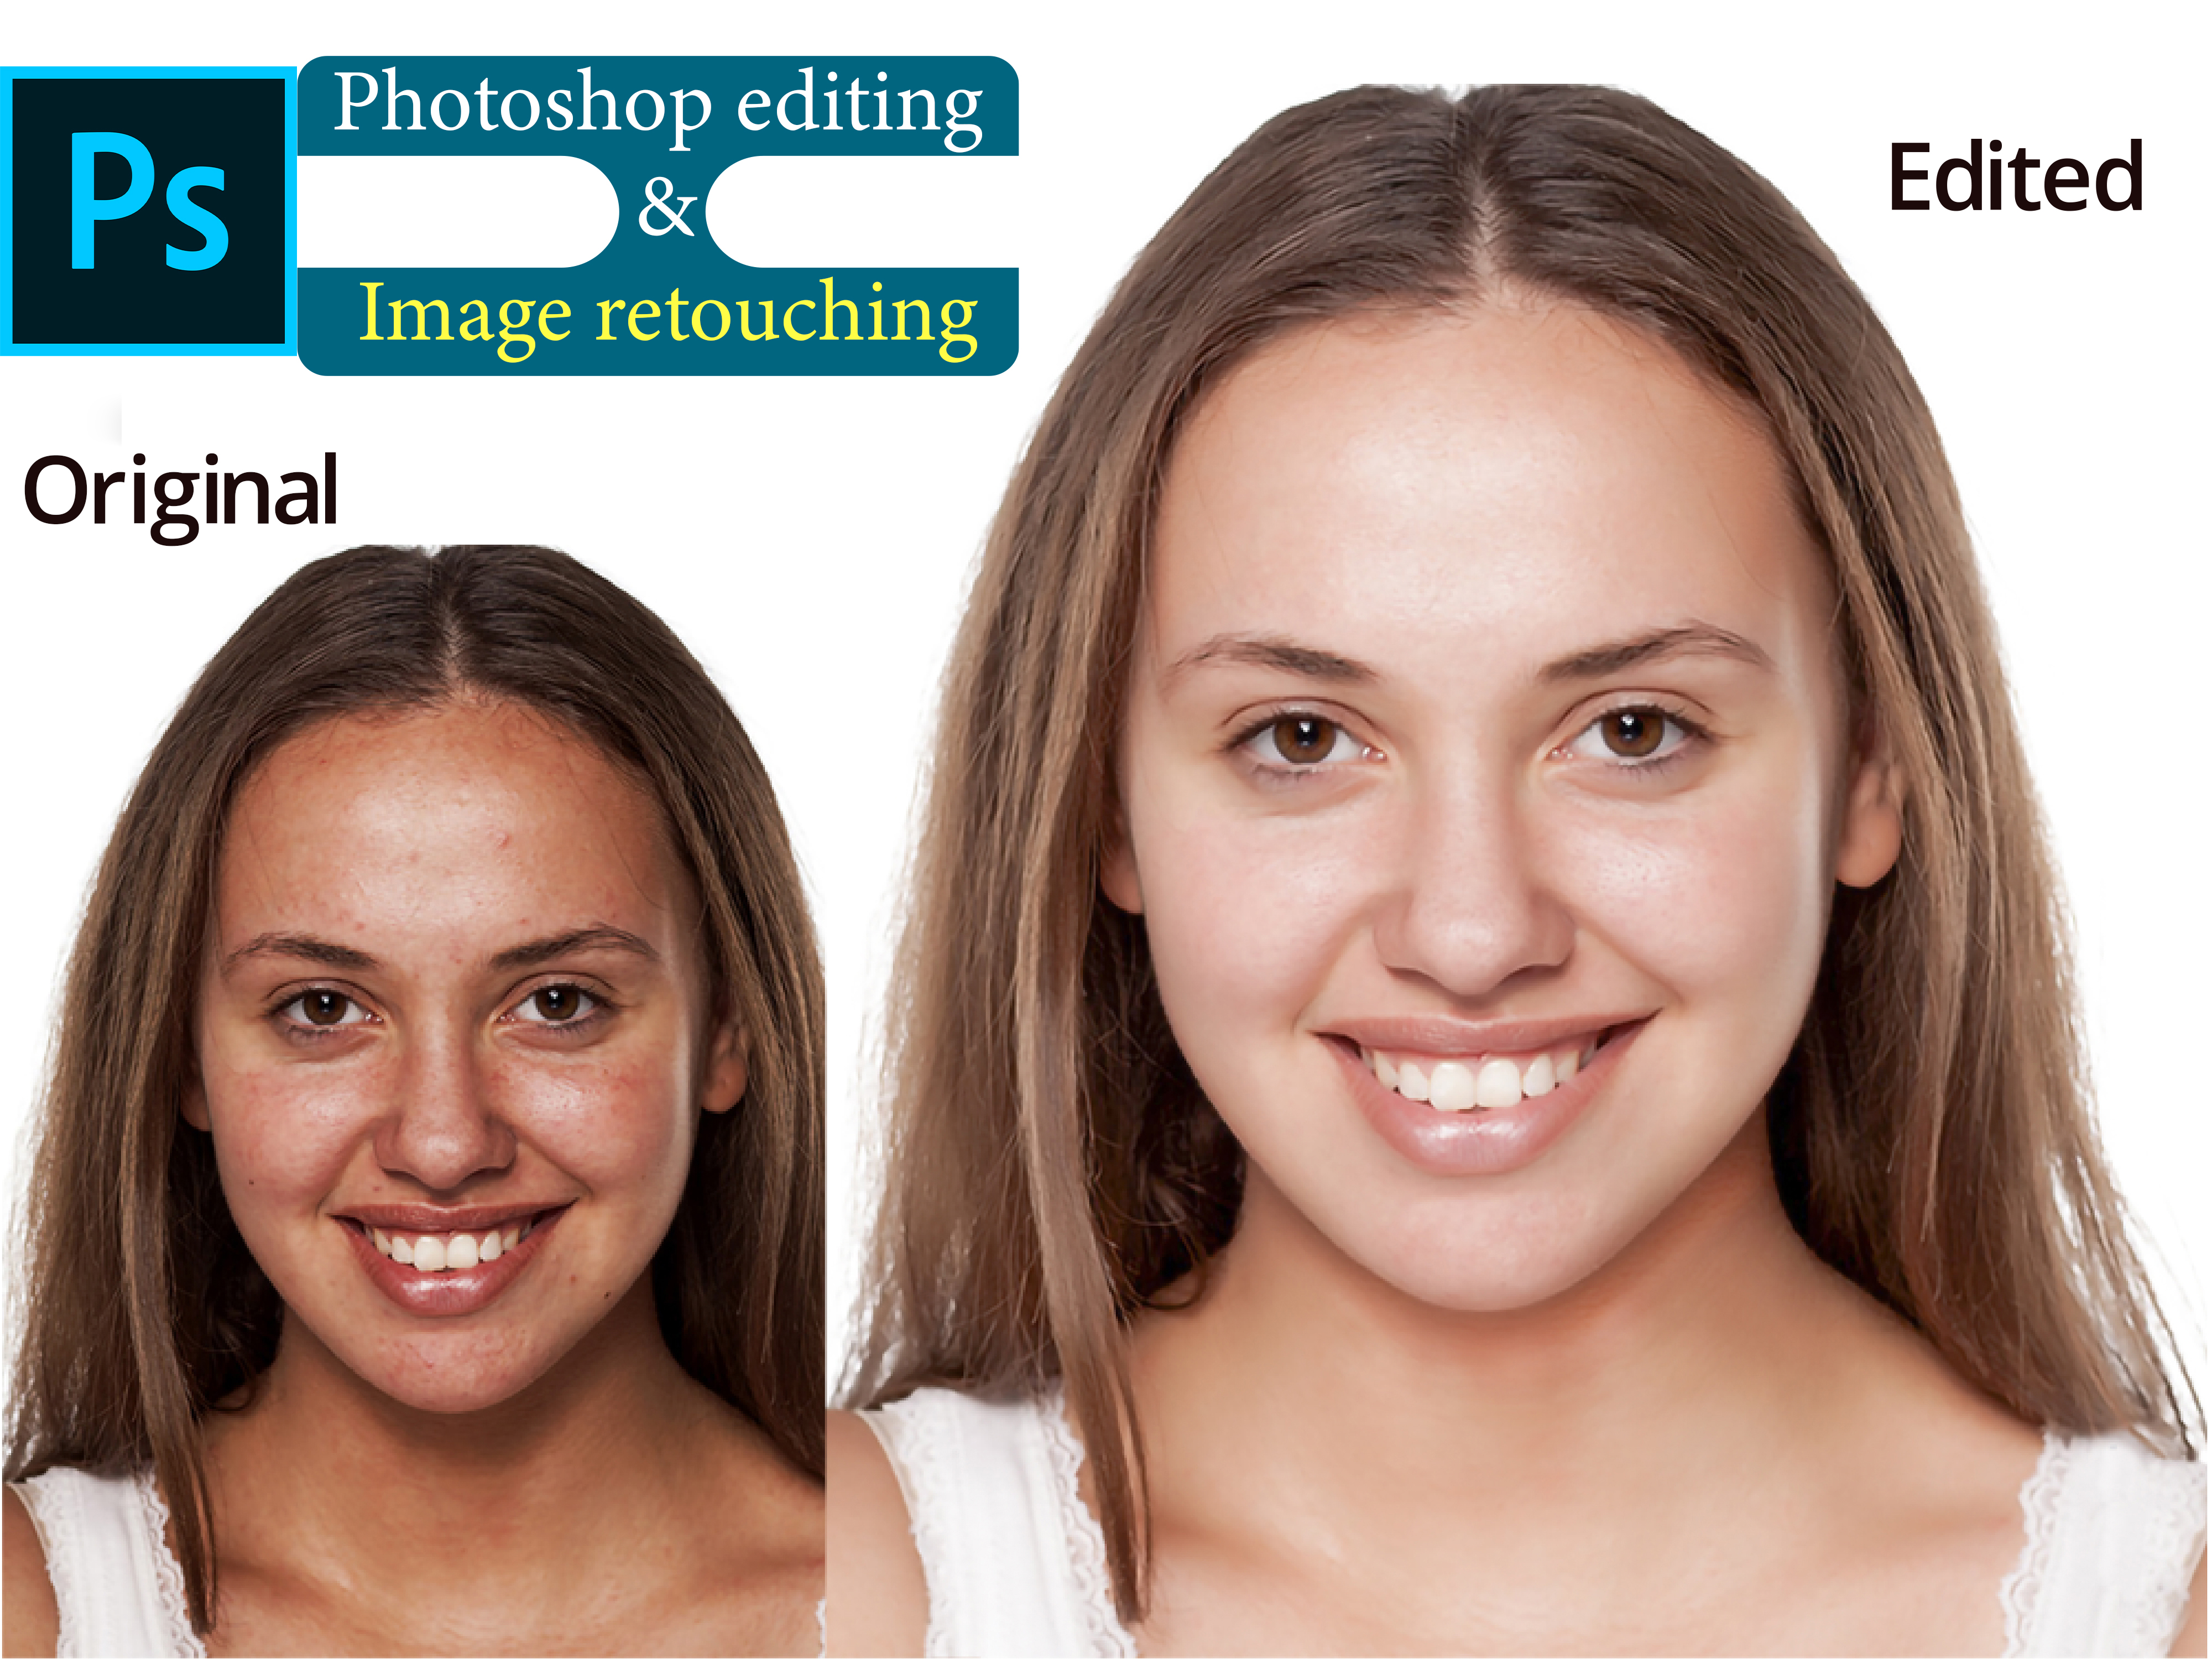 You will get Nice Photo editing & Image retouching very fast